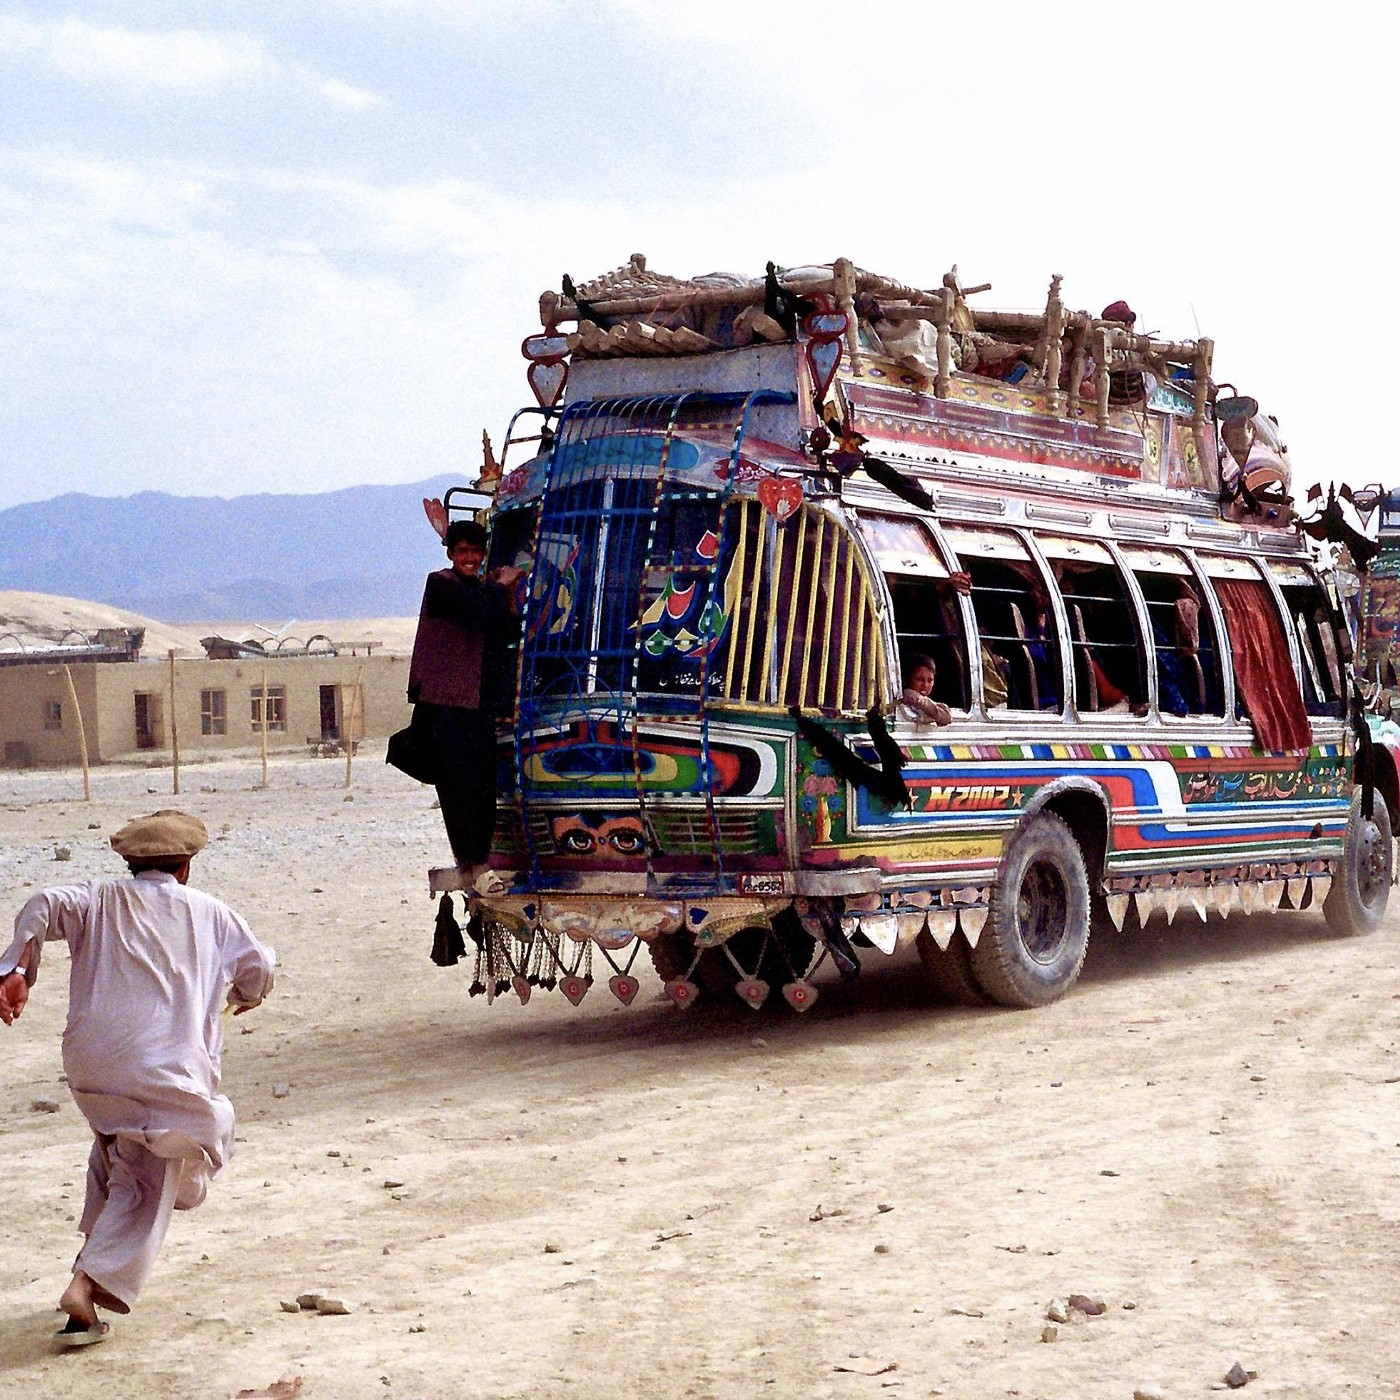 Man chasing a colorful bus in Afgh